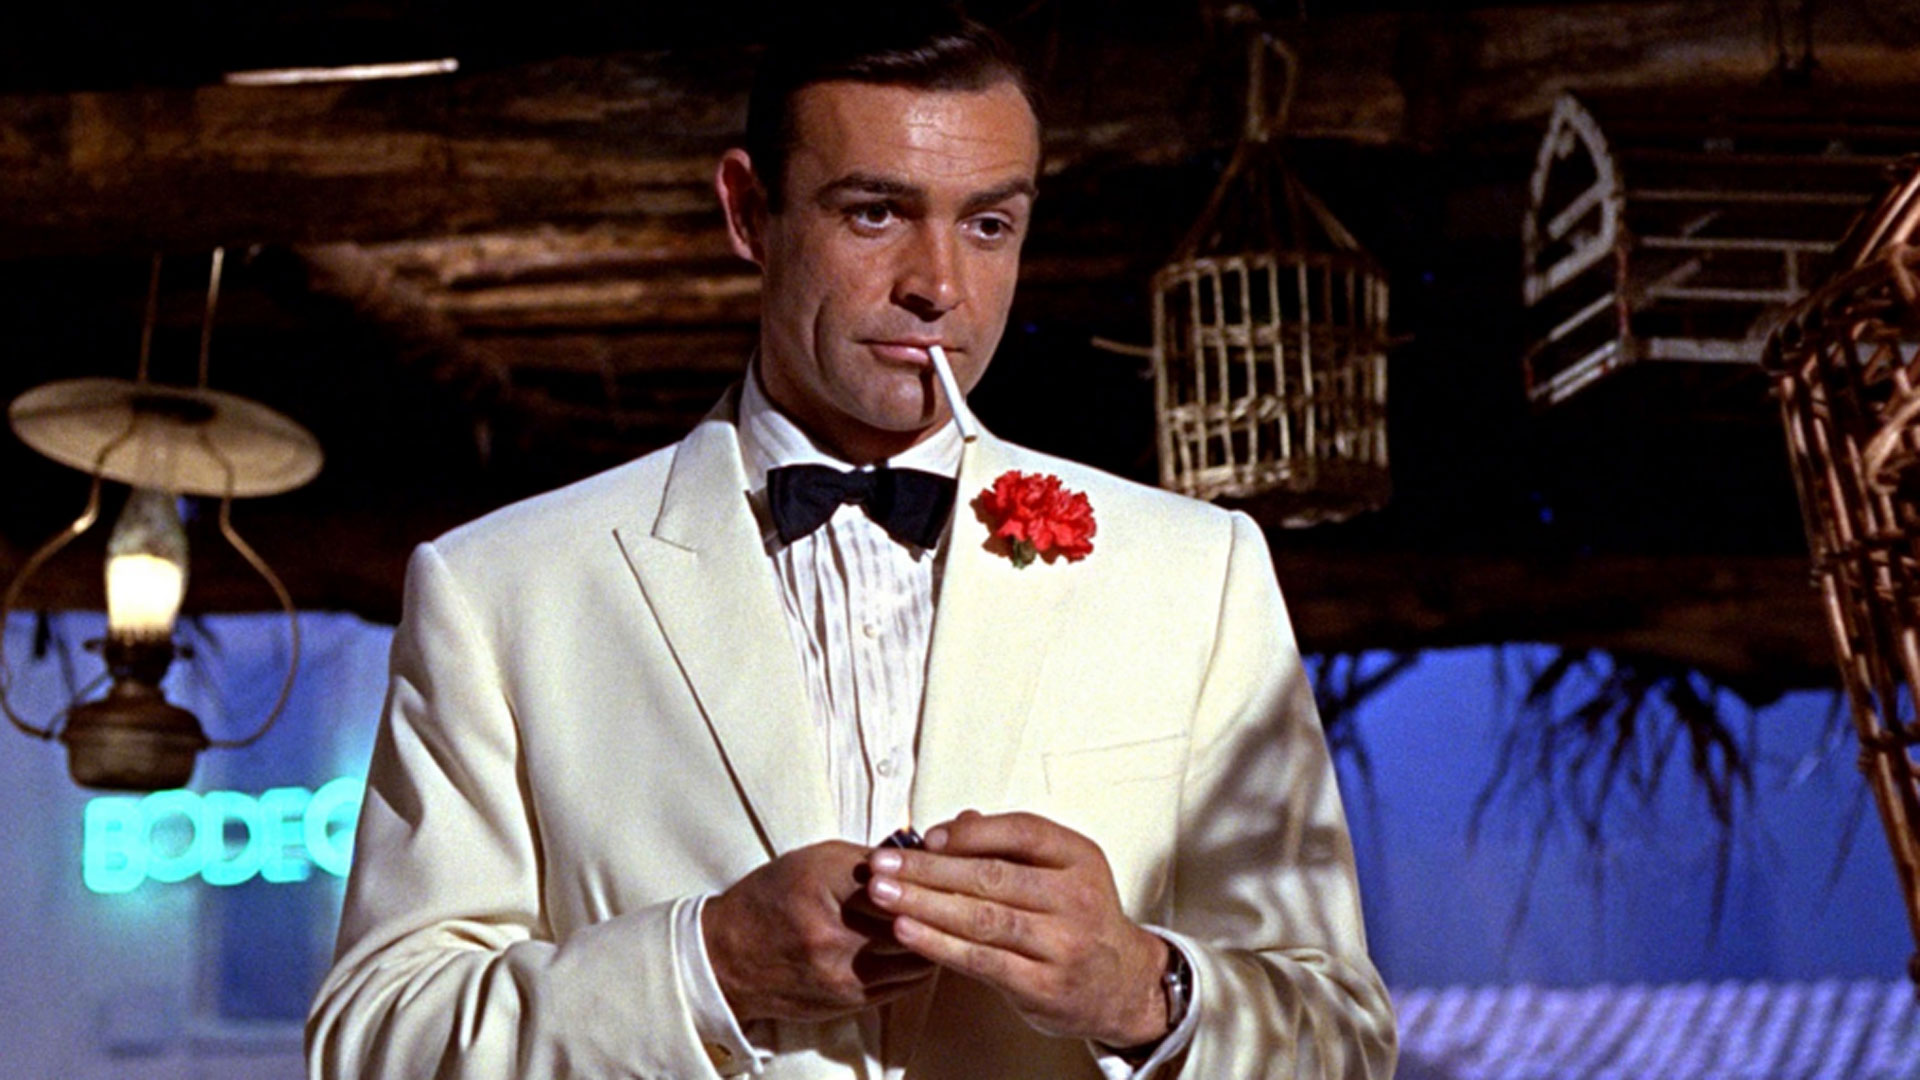 Sean Connery, award-winning actor who starred as first-ever James Bond,  dies at 90 | KTLA